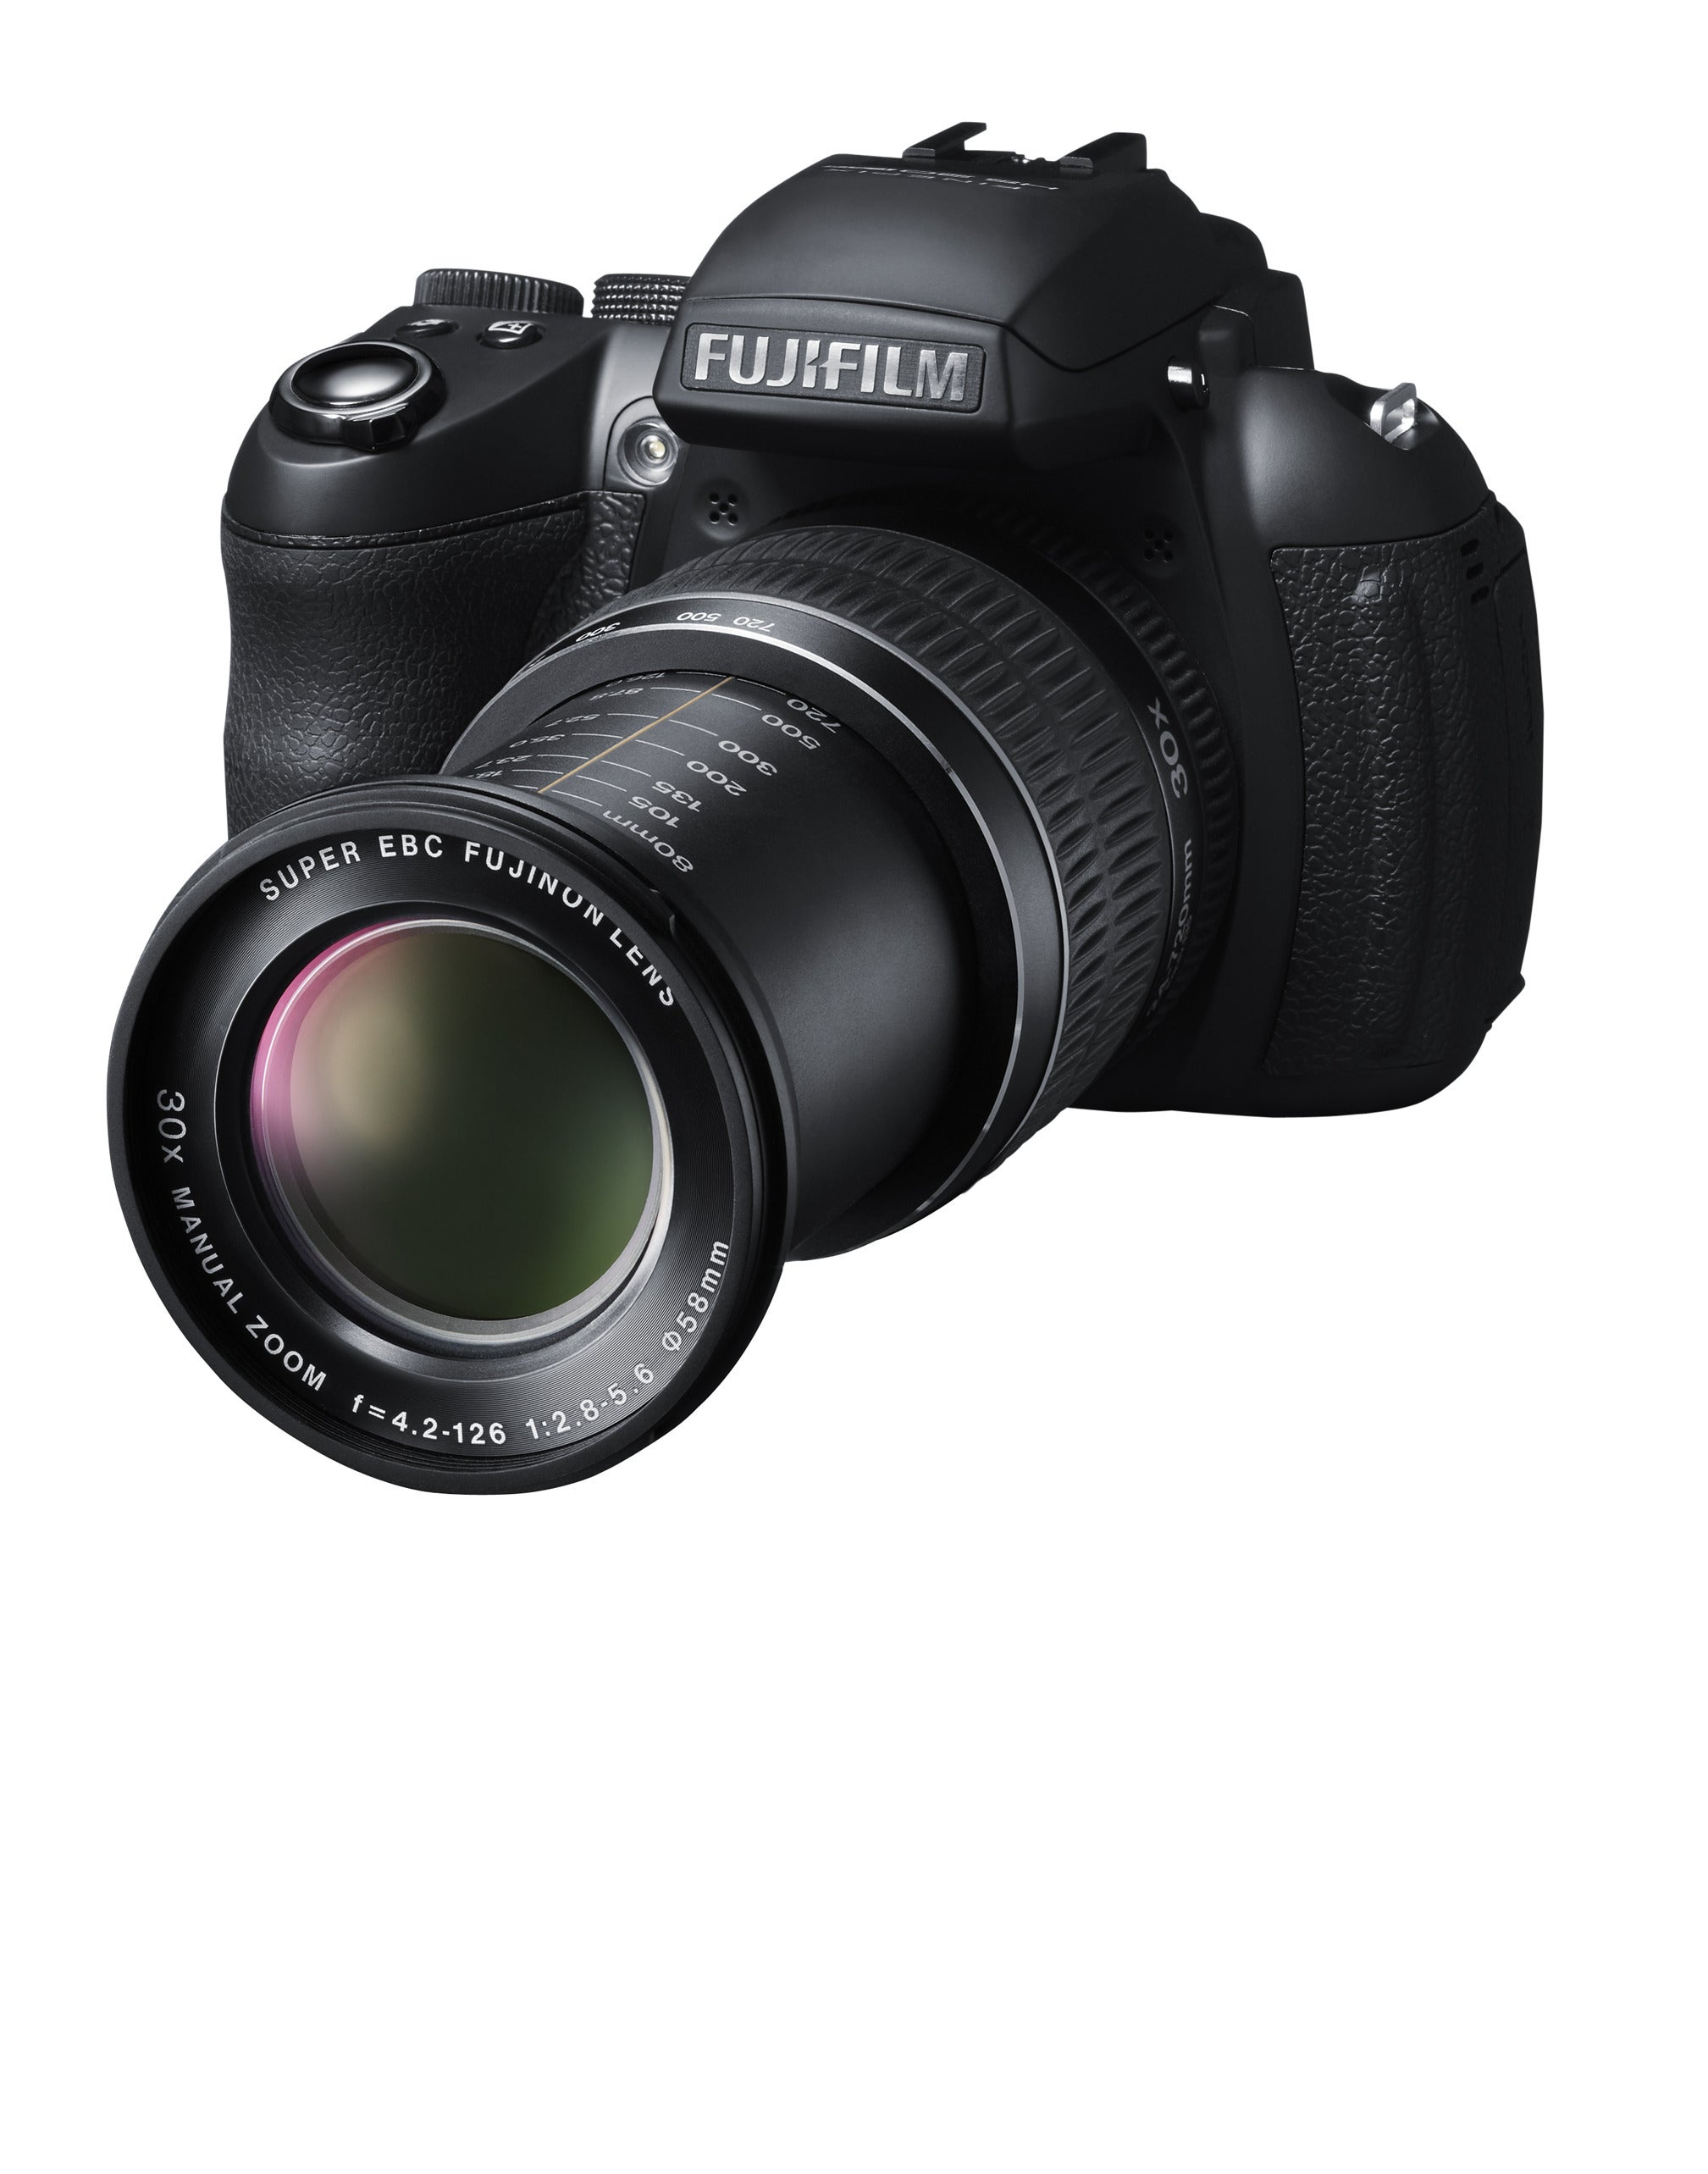 fujifilm x s1 headlines 19 new camera announcements for ces gadgetyours Digital Cameras with Manual Focus Webcam Manual Focus